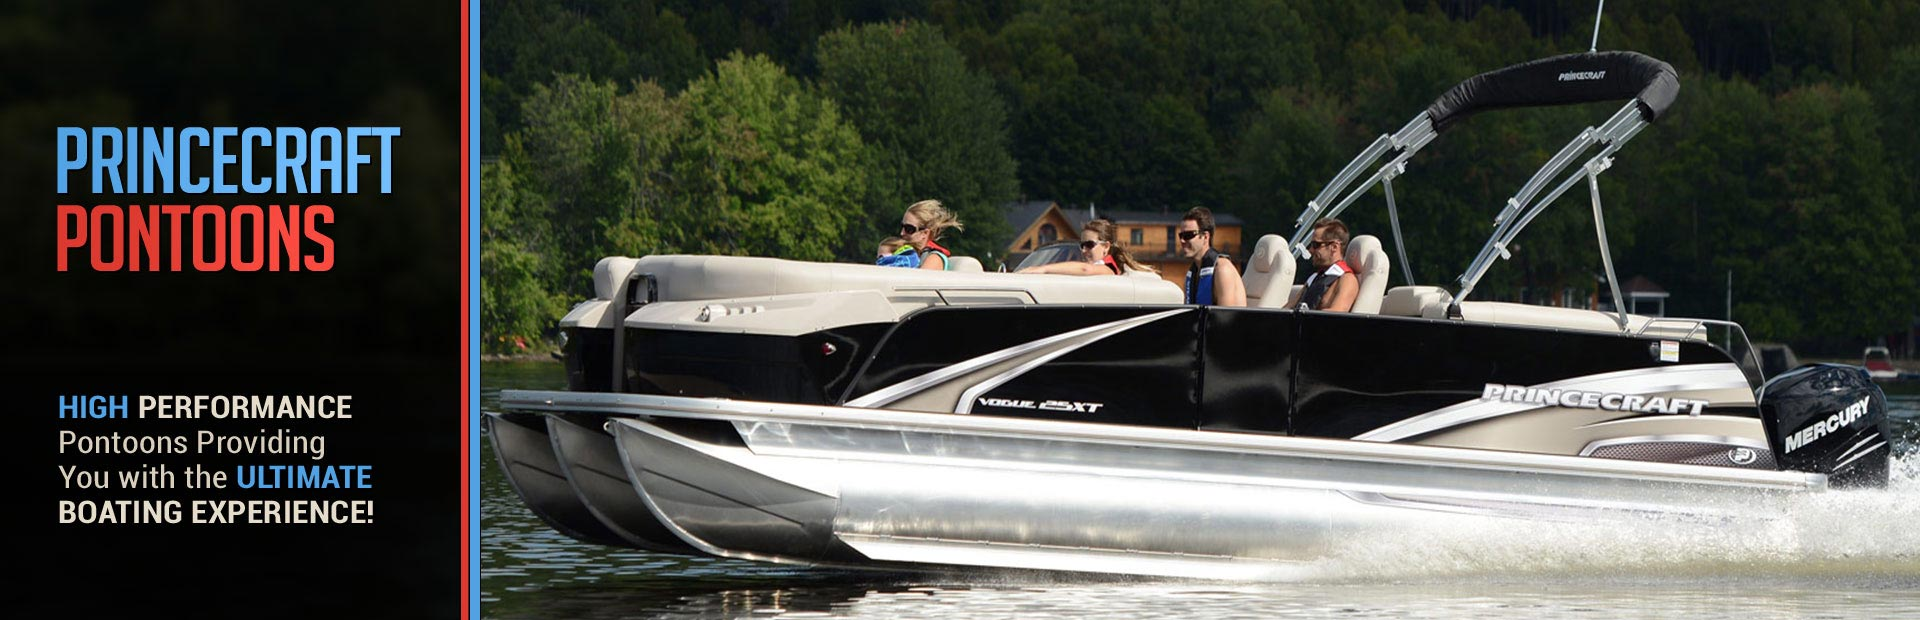 Princecraft Pontoons: Click here to view the models.